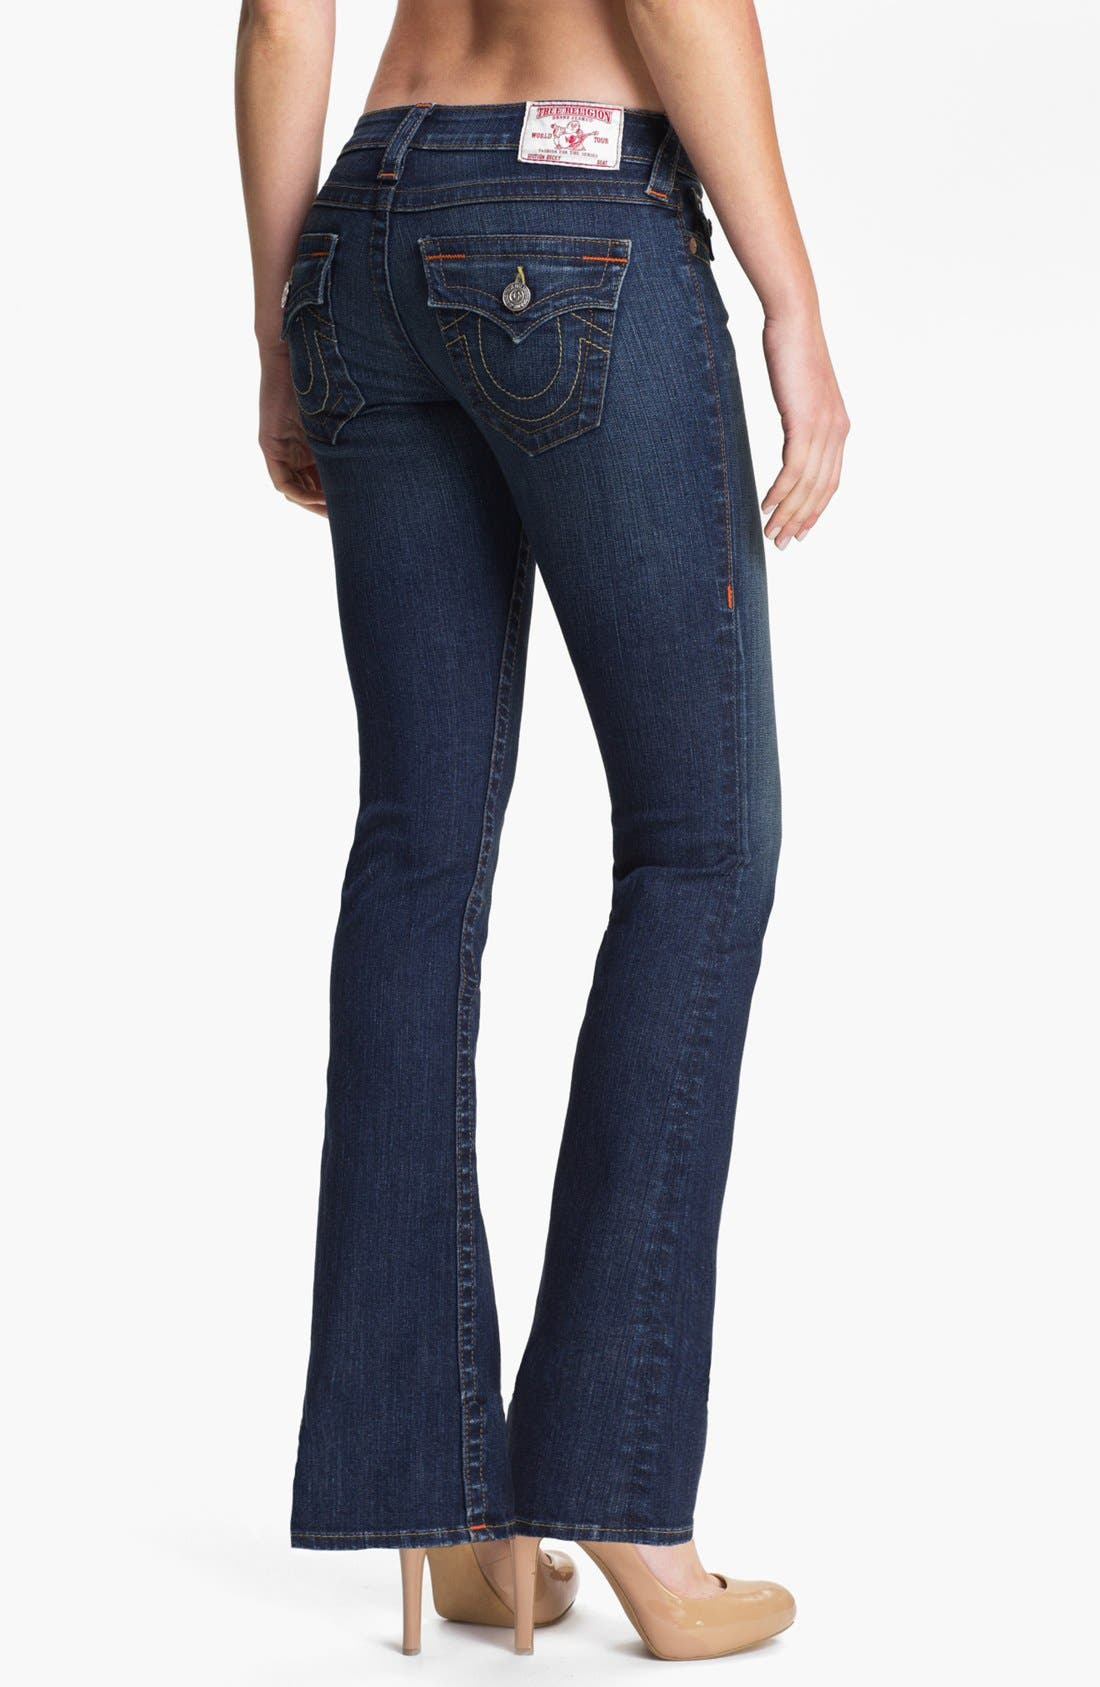 Alternate Image 2  - True Religion Brand Jeans 'Becky' Bootcut Jeans (Dusty Skies) (Petite)